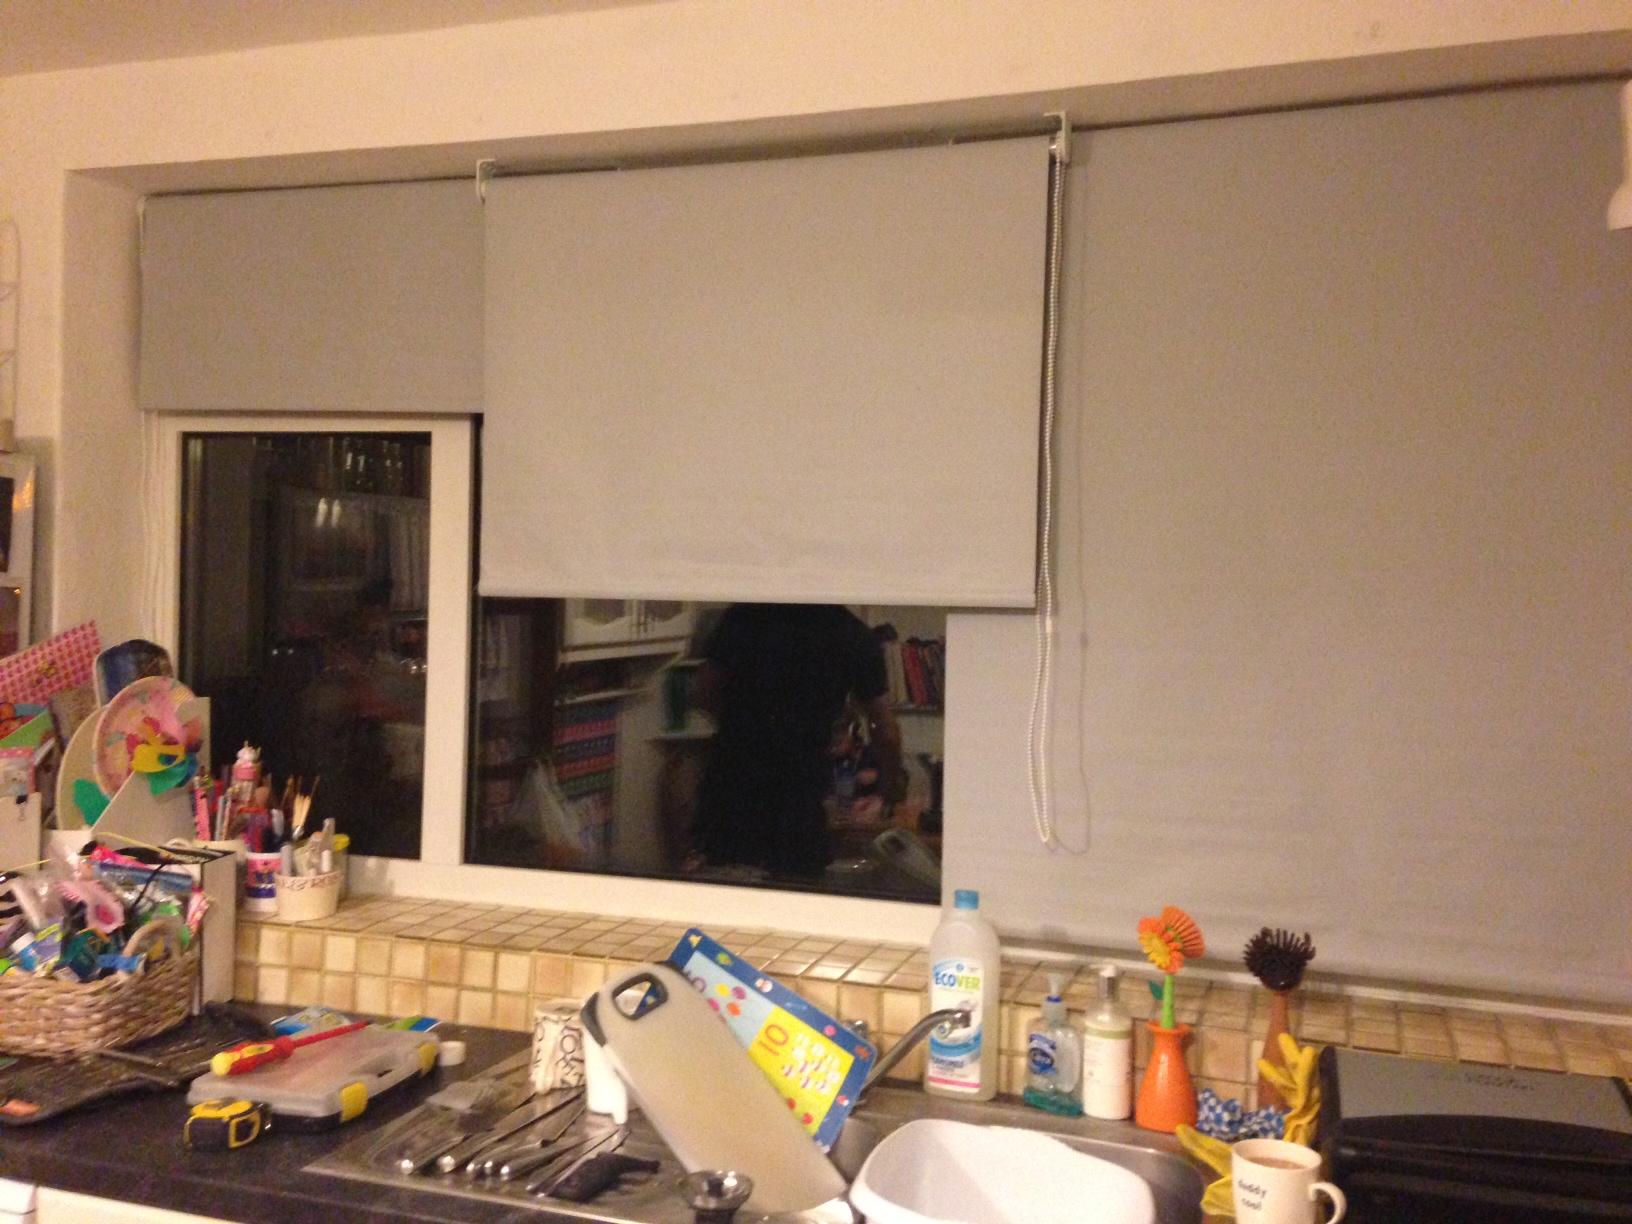 New Kitchen Window Blinds Notes To Self